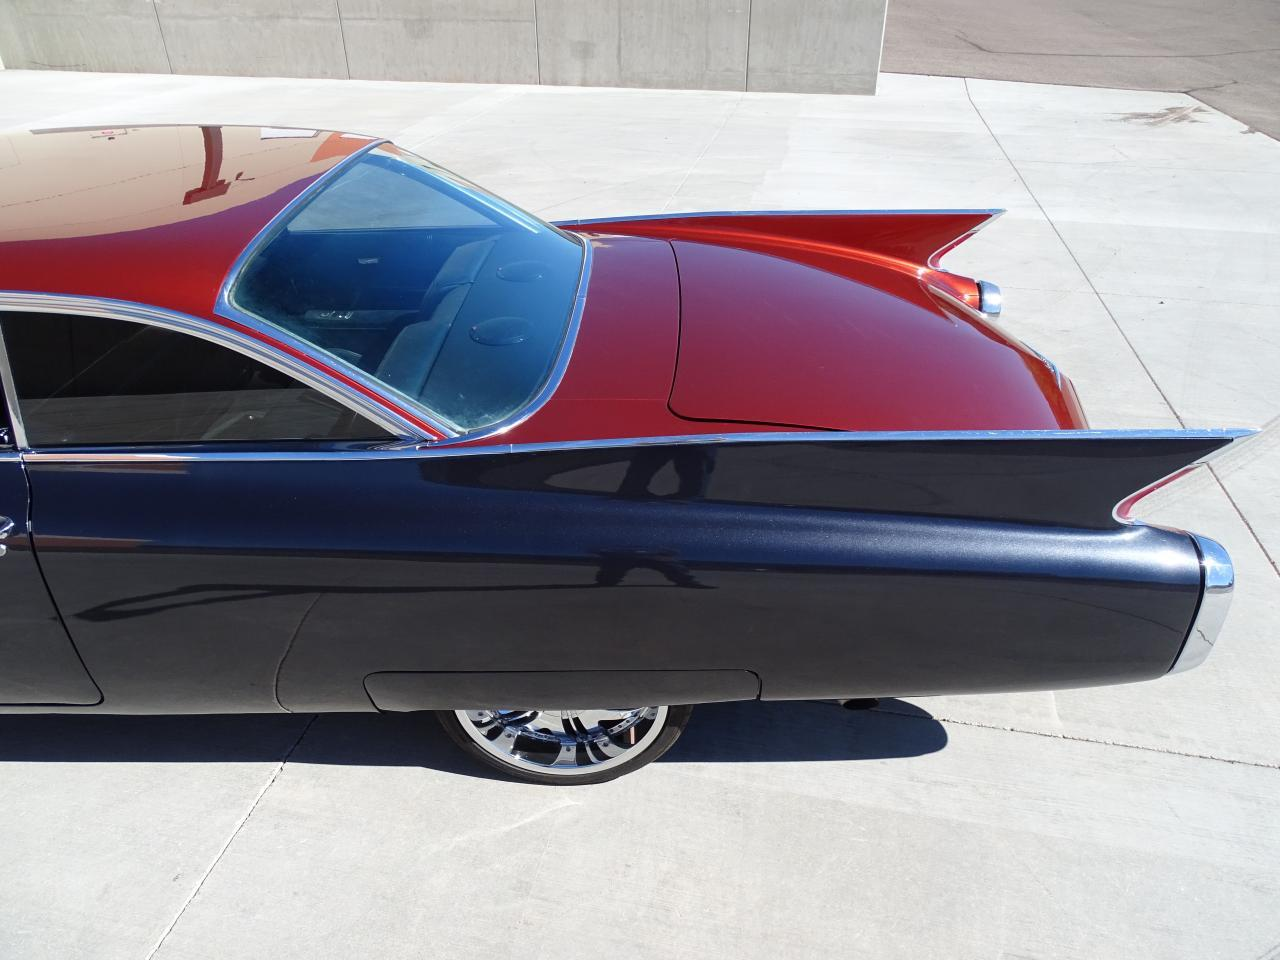 Large Picture of Classic '60 Cadillac Series 62 located in Deer Valley Arizona - $51,000.00 - MZFH